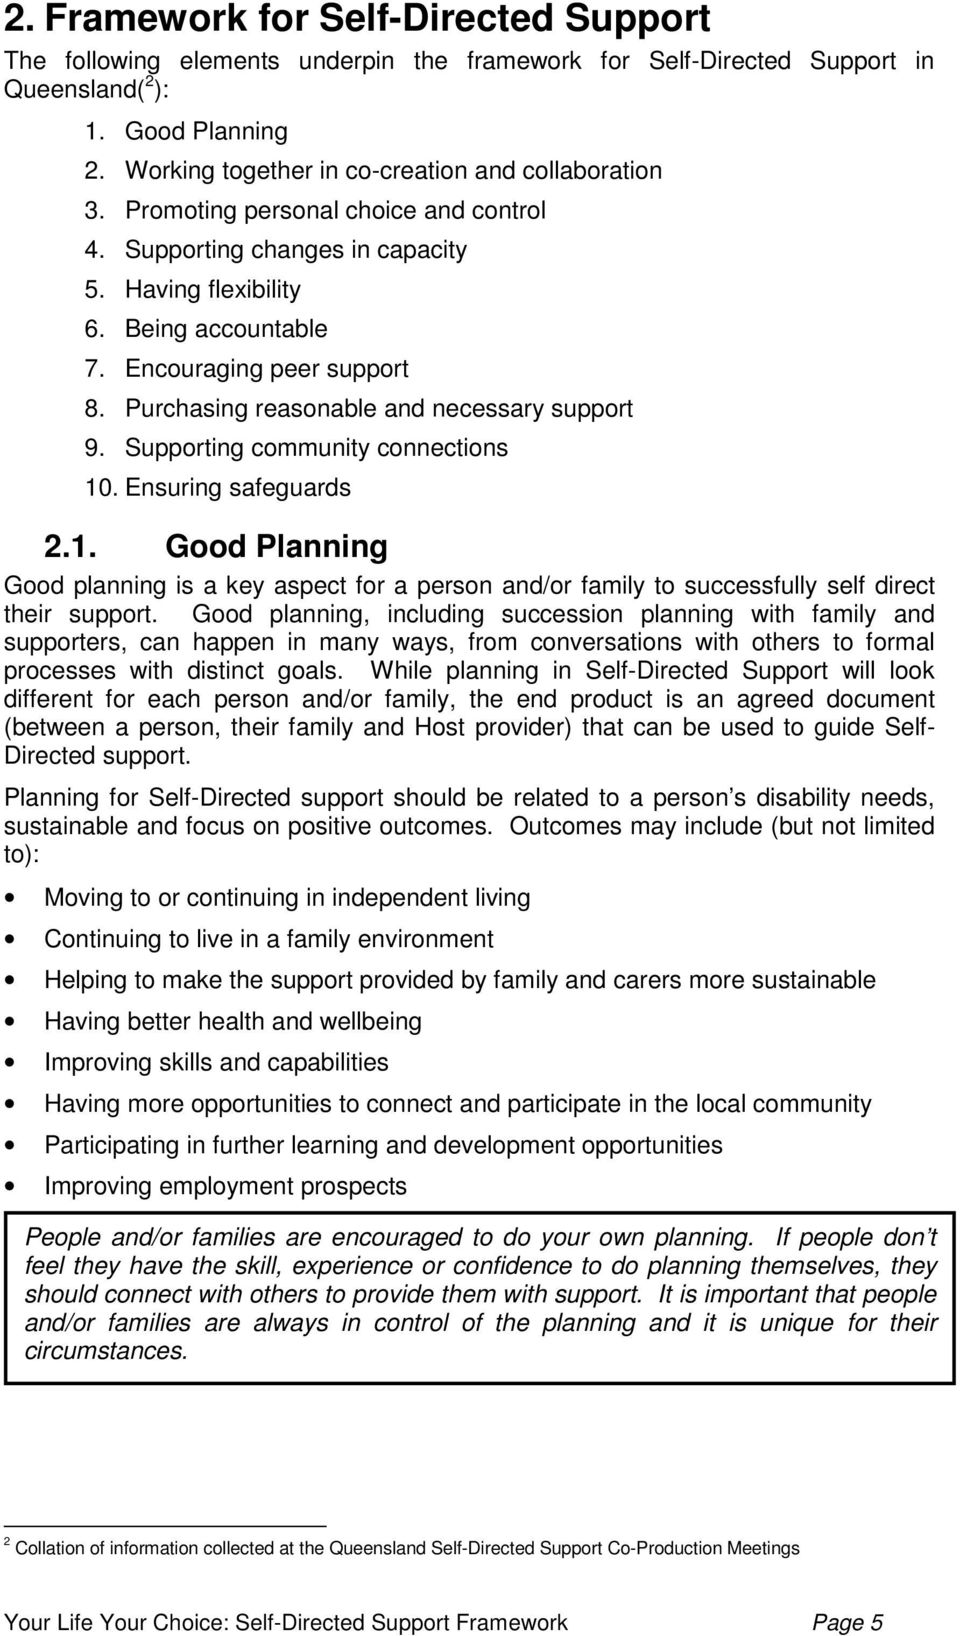 Purchasing reasonable and necessary support 9. Supporting community connections 10. Ensuring safeguards 2.1. Good Planning Good planning is a key aspect for a person and/or family to successfully self direct their support.